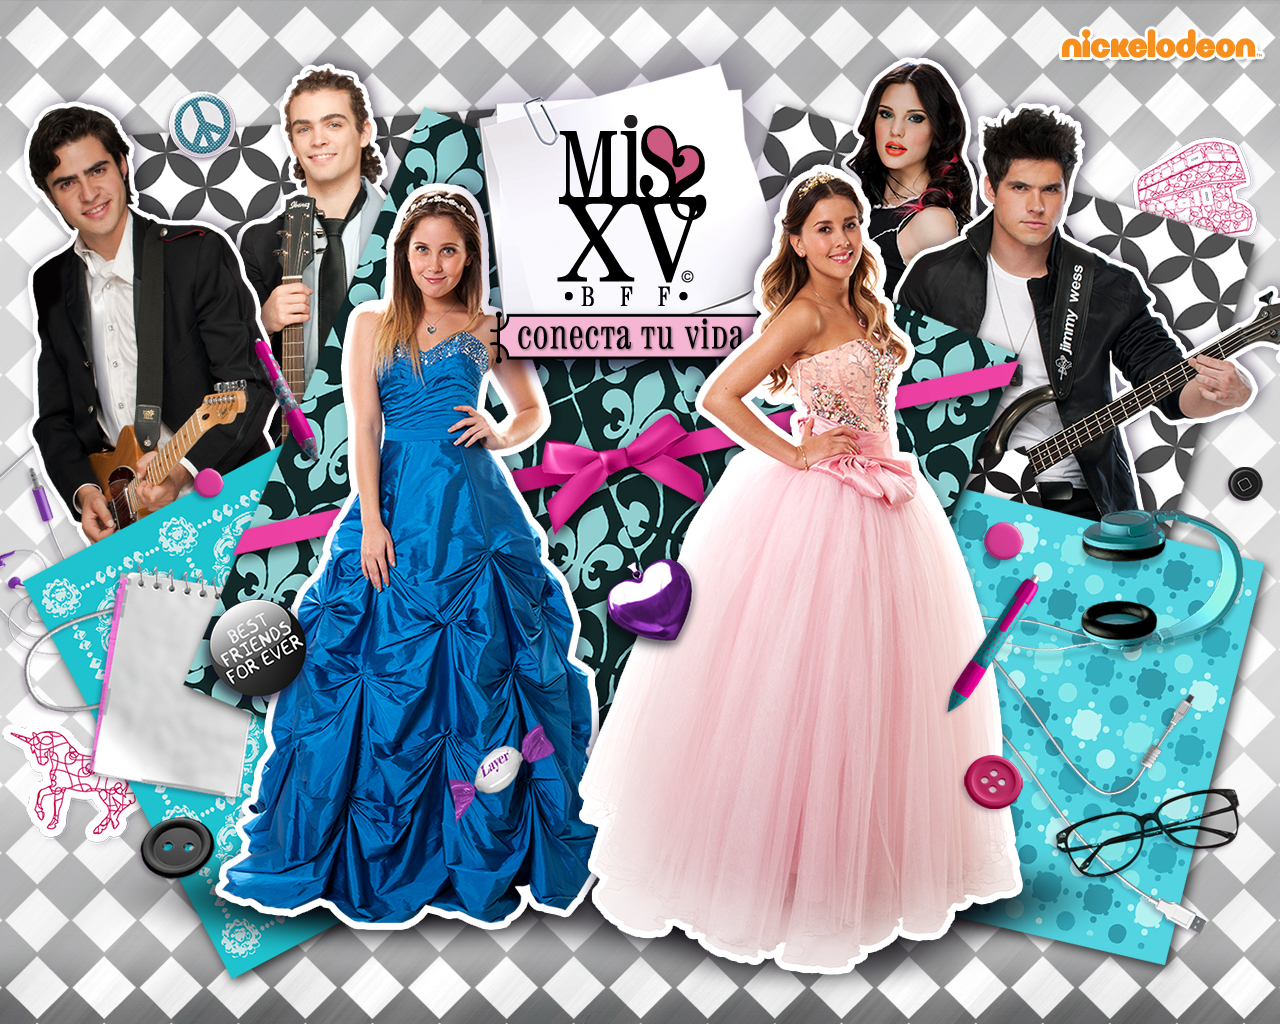 MIS XV MUSIC WORLD